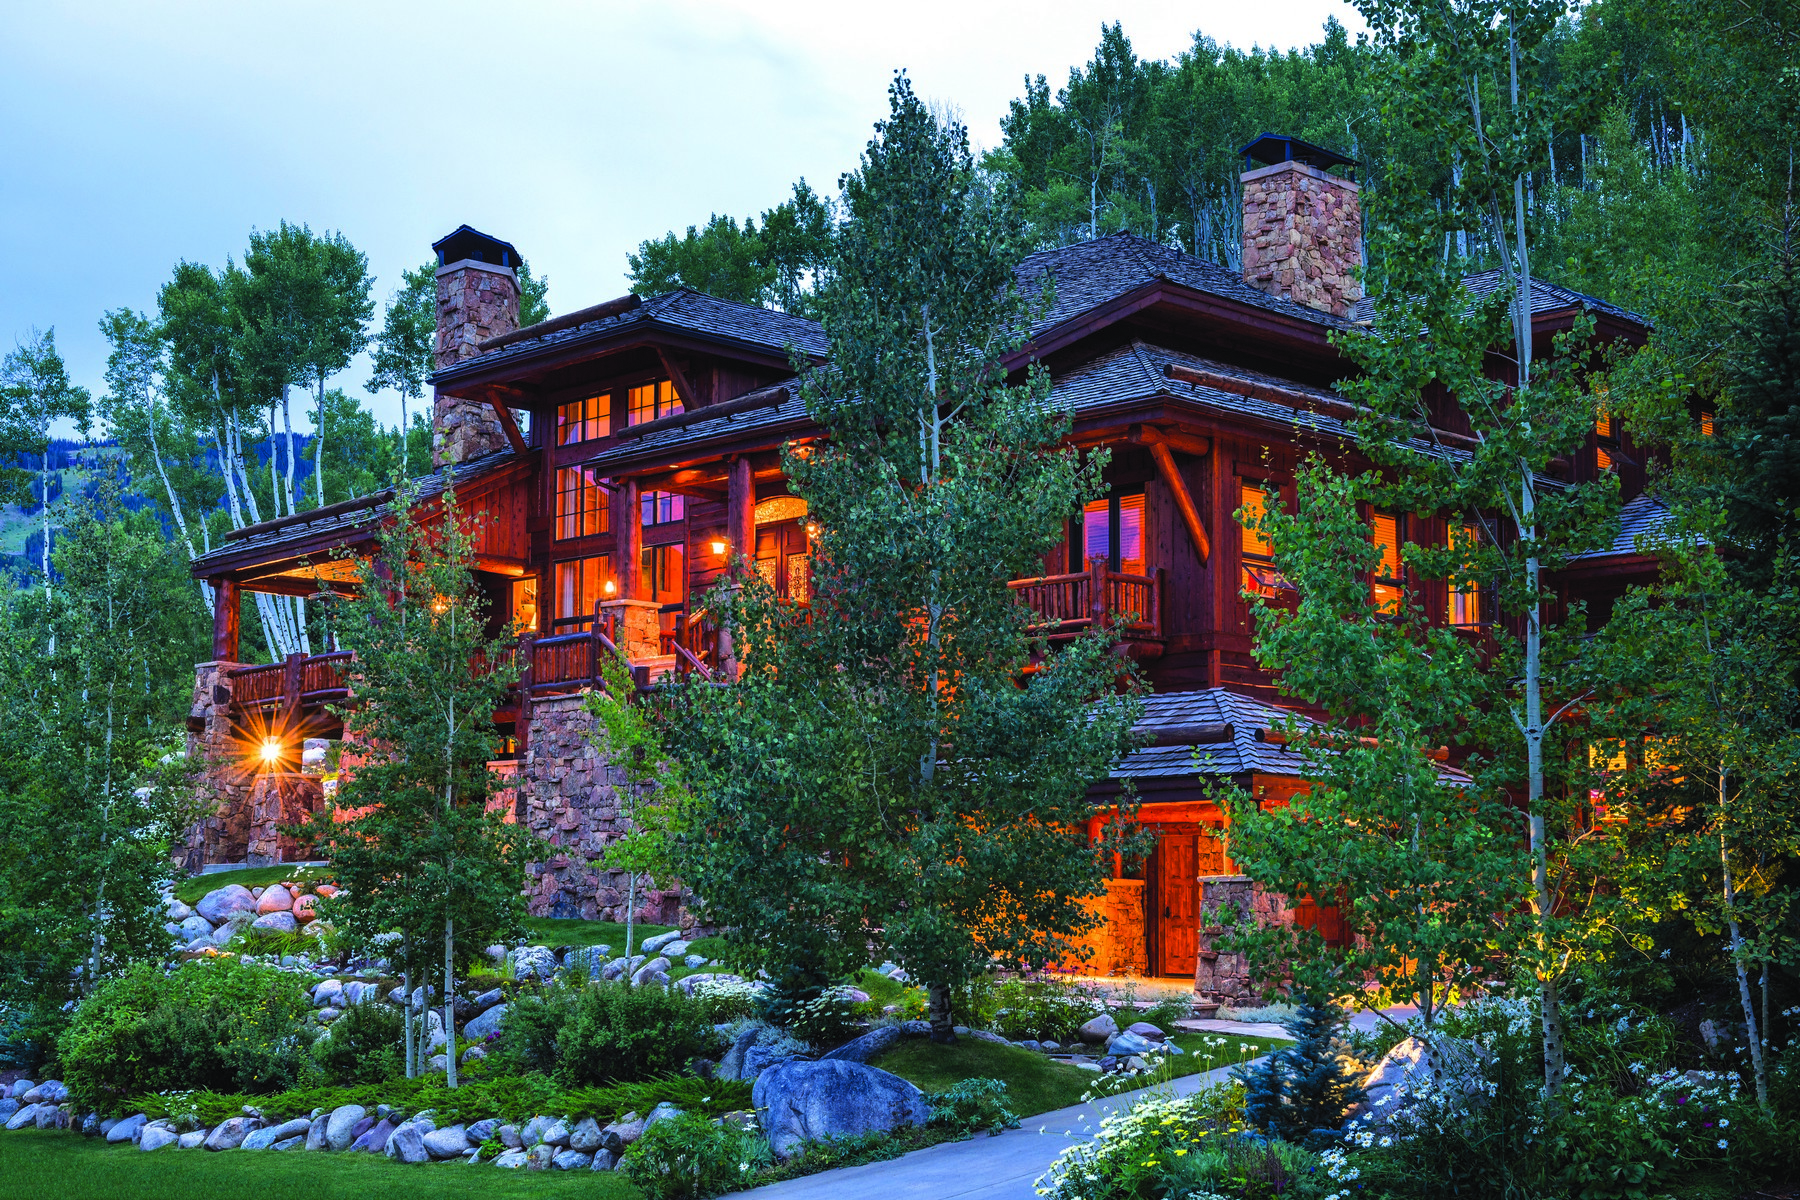 Single Family Home for Sale at Beaver Creek's Most Stunning Log Home 201 Borders Rd Avon, Colorado, 81620 United States